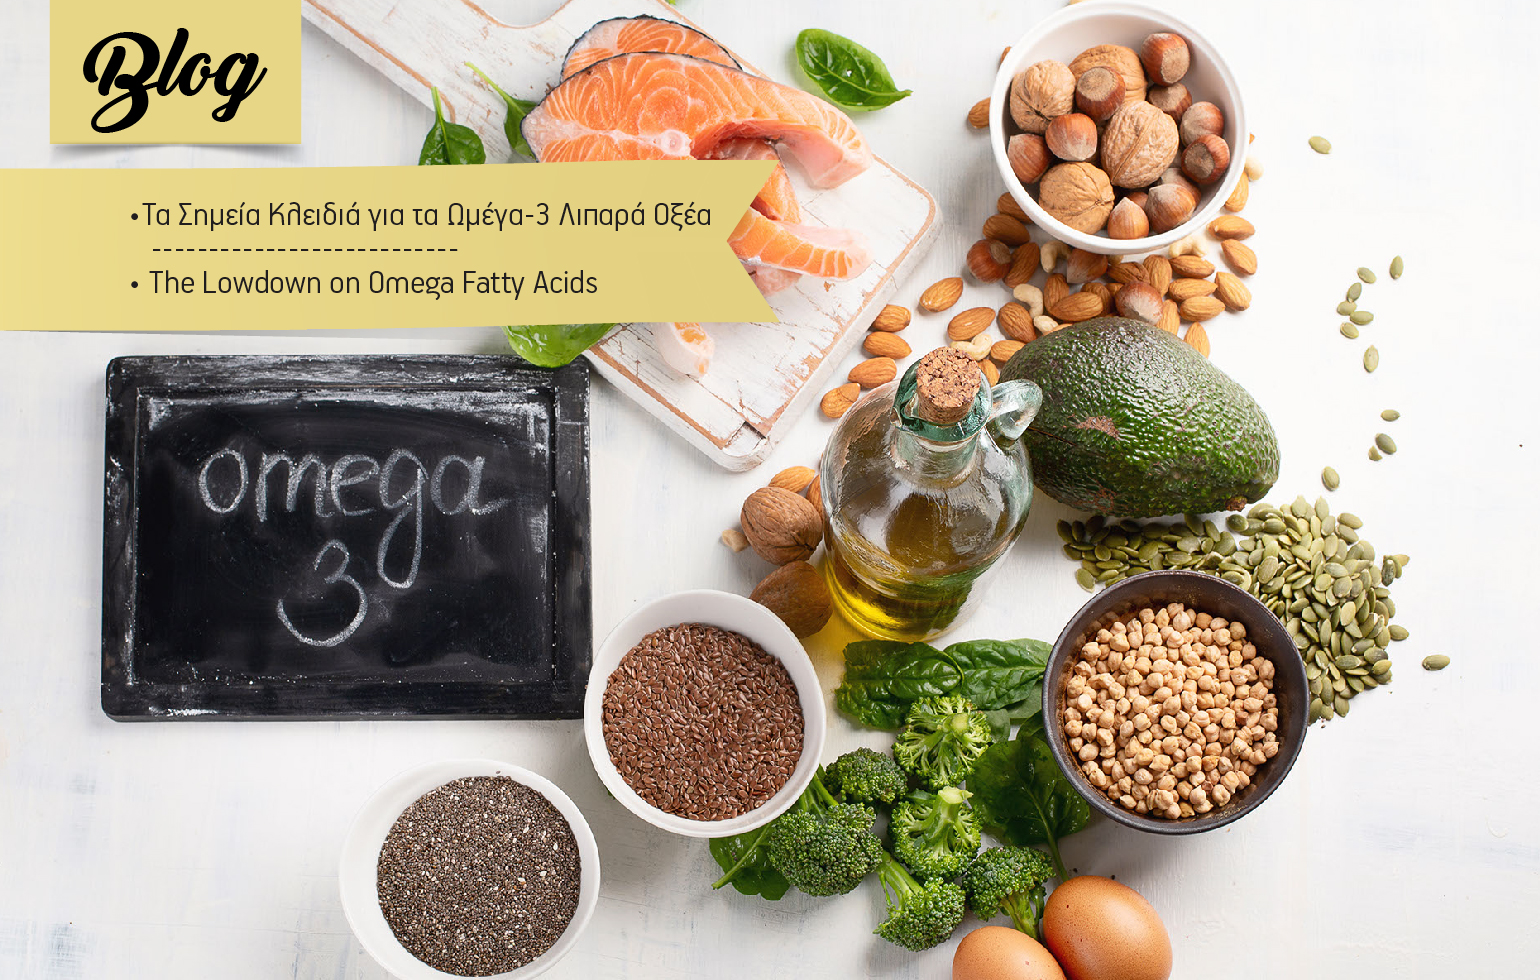 photo with foods that contain omega fatty acids